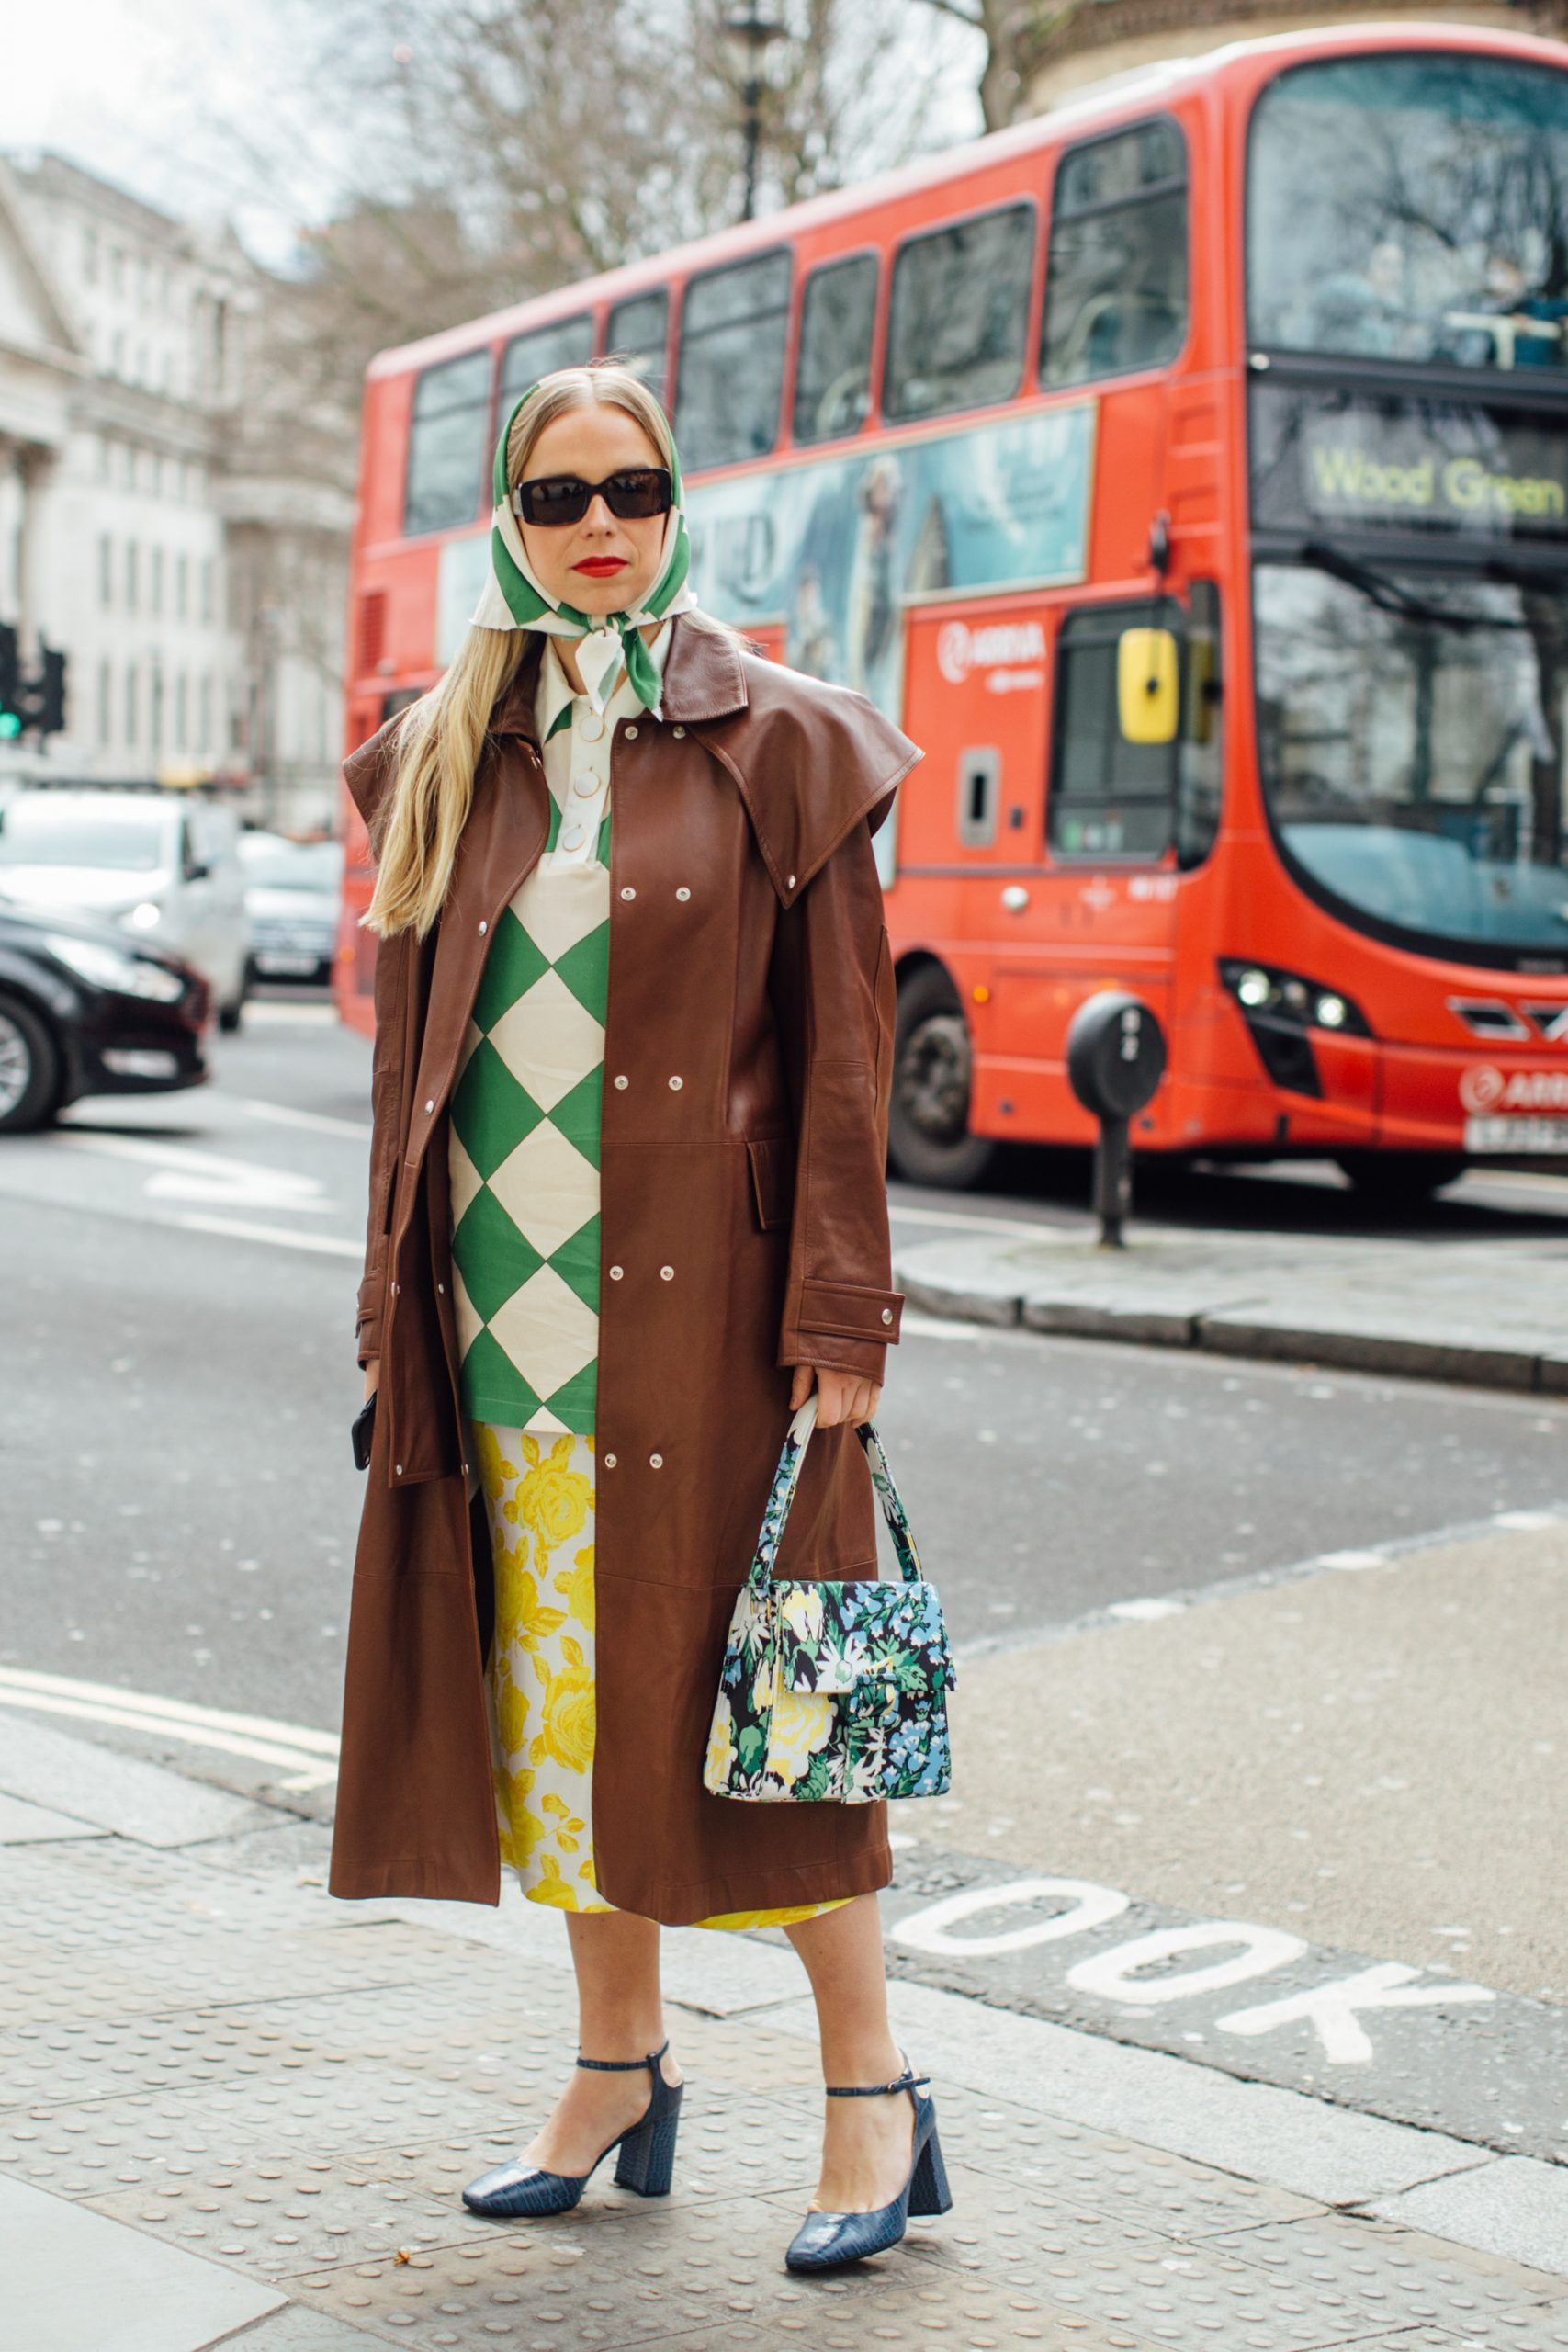 London Street Style Influencer Looks Fall 2020 | The Impression